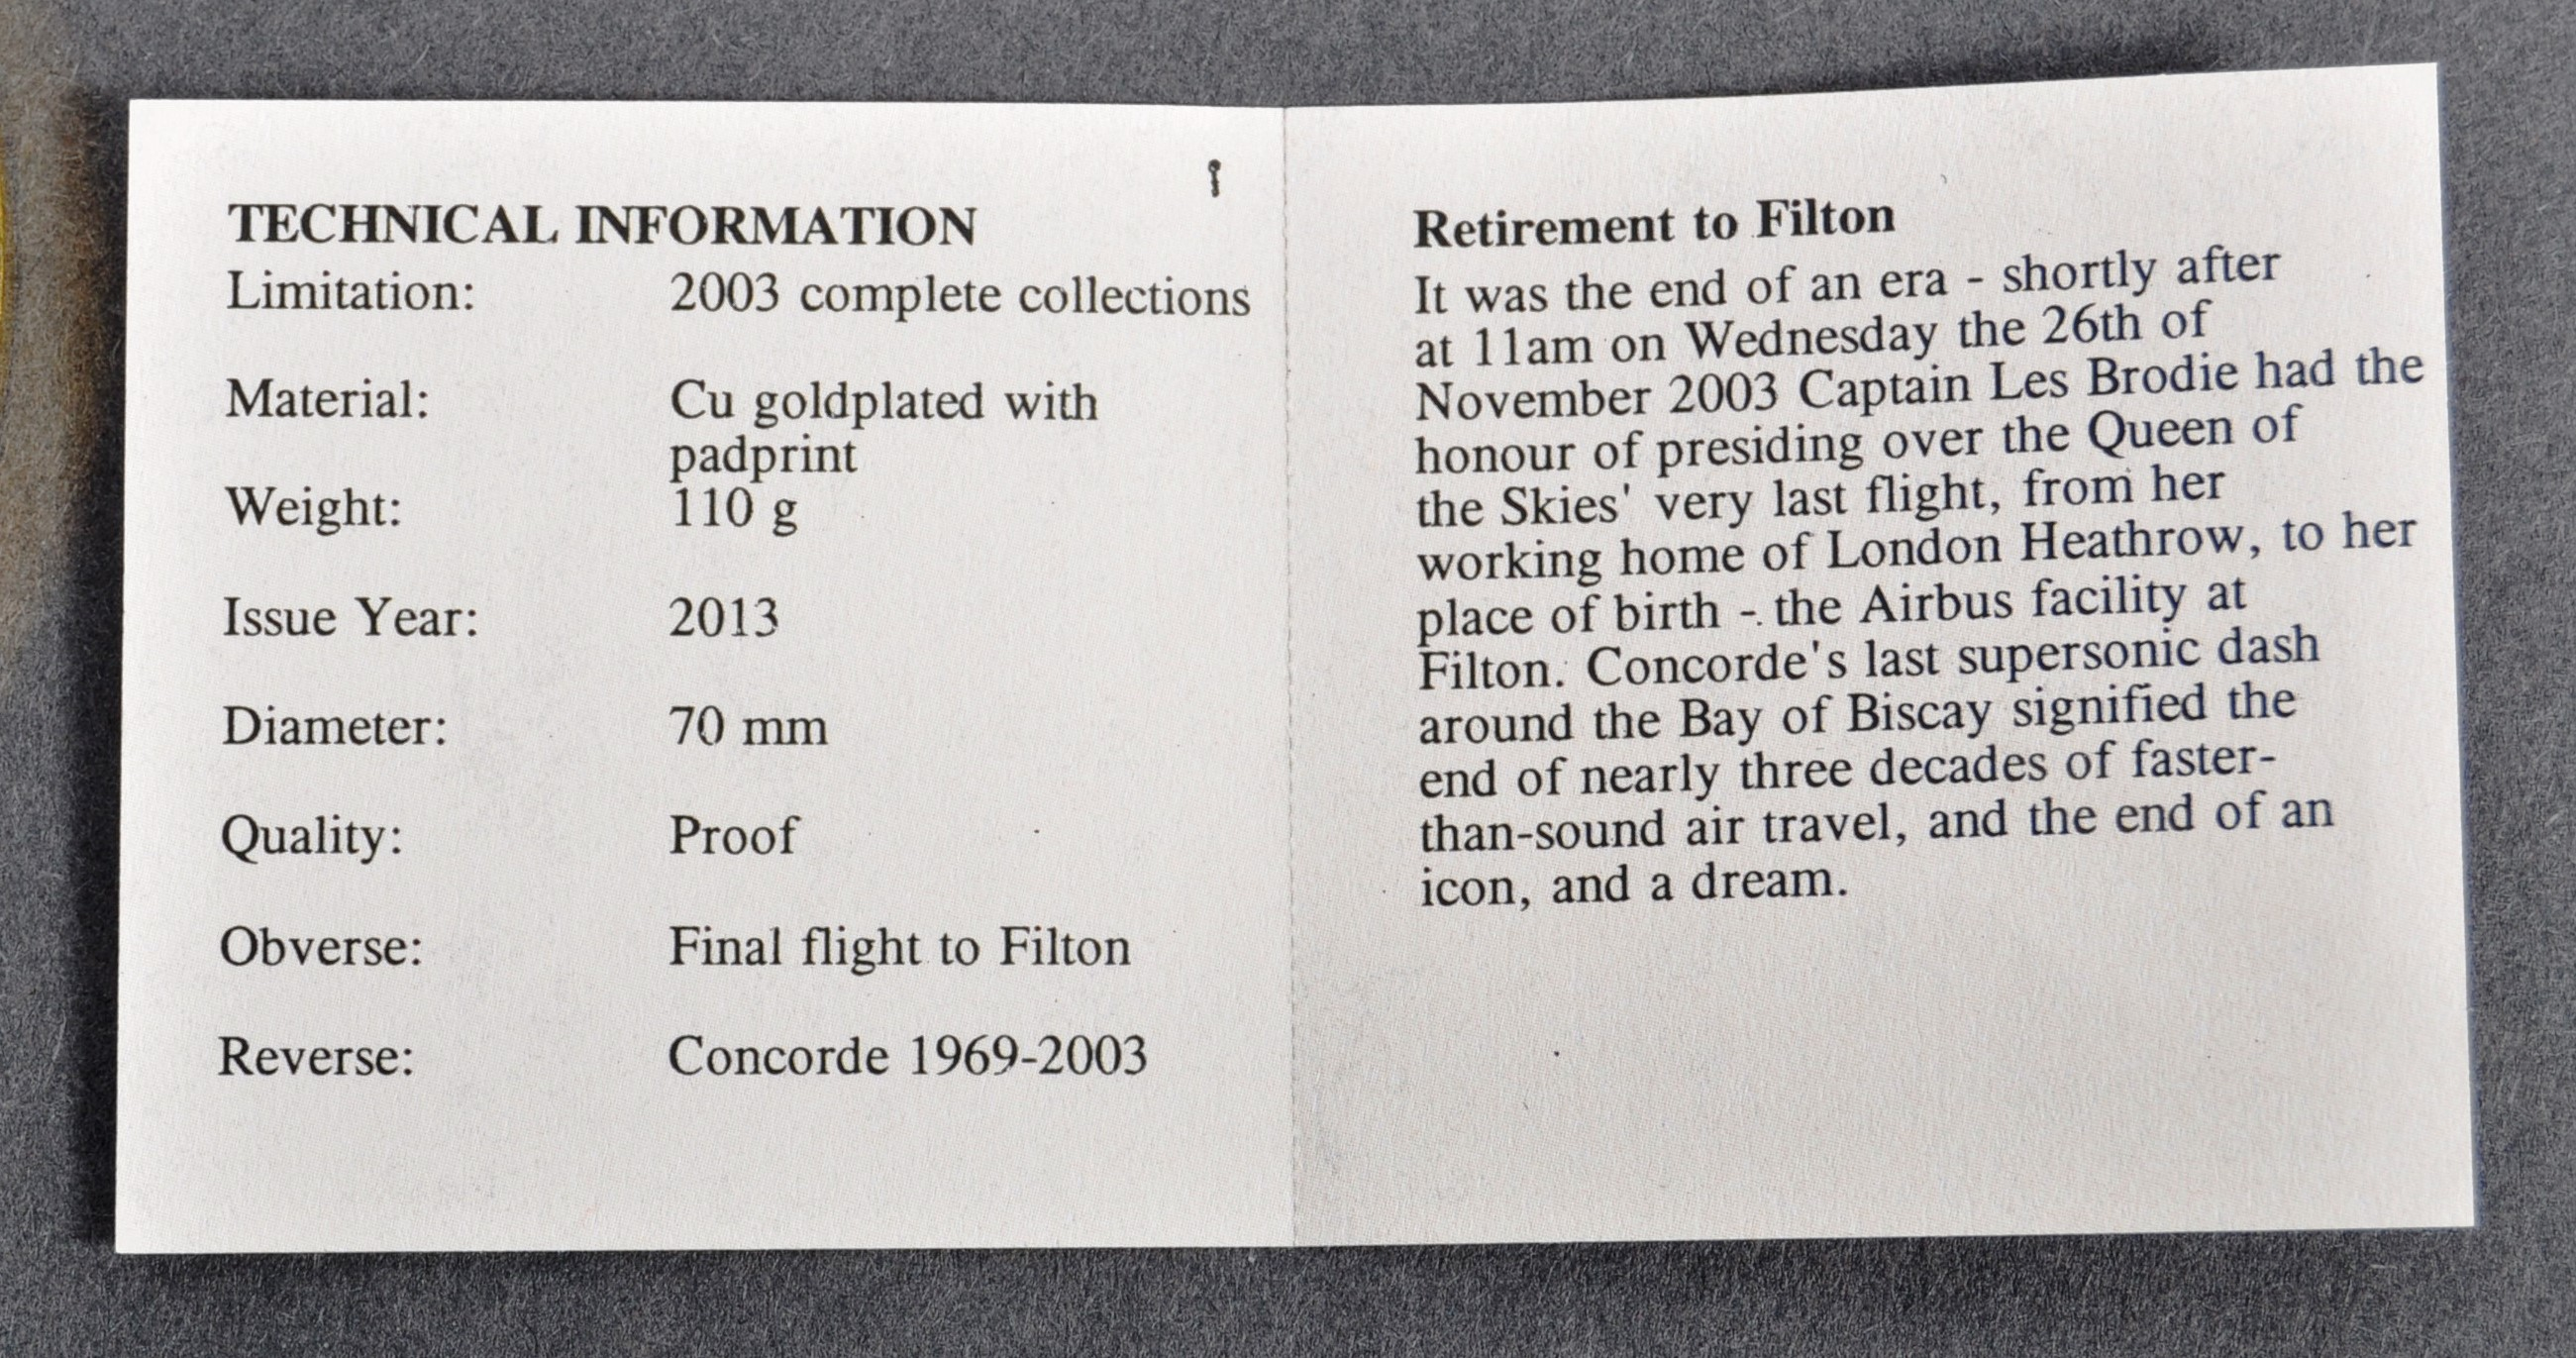 LIMITED EDITION CONCORDE FINAL FLIGHT COMMEMORATIVE MEDAL - Image 4 of 5